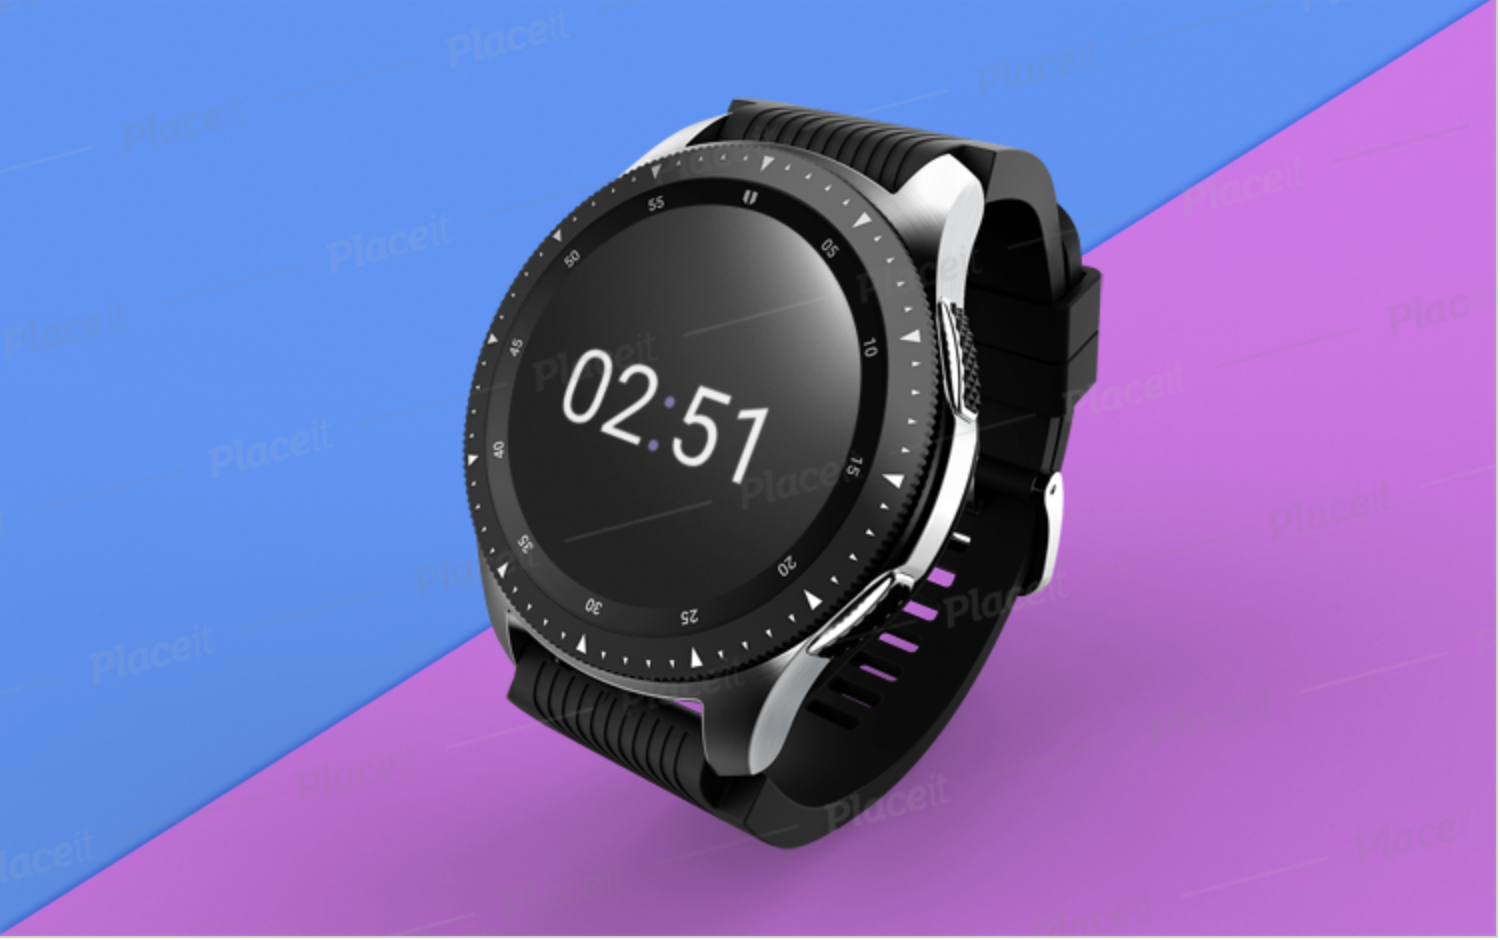 Build watch faces for Wear OS - ProAndroidDev